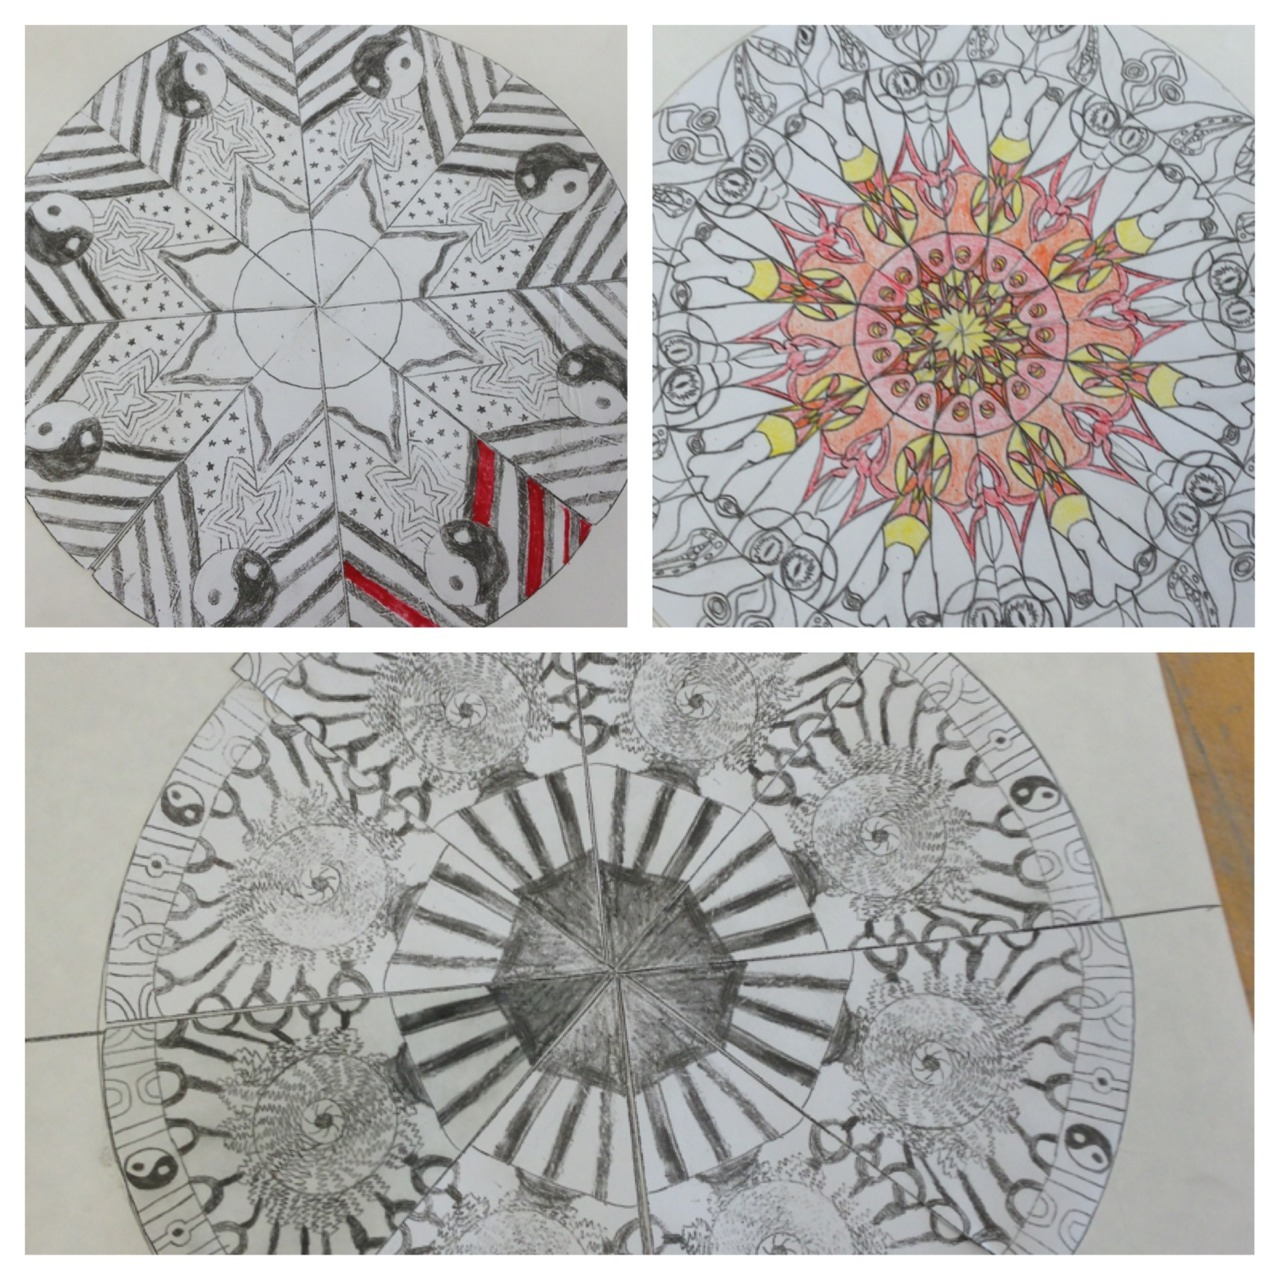 Omg new tumblr app update!!  Here are some of my 7th graders' mandalas! These are just from today, they look great!   And now I'm on spring break until April 2nd!